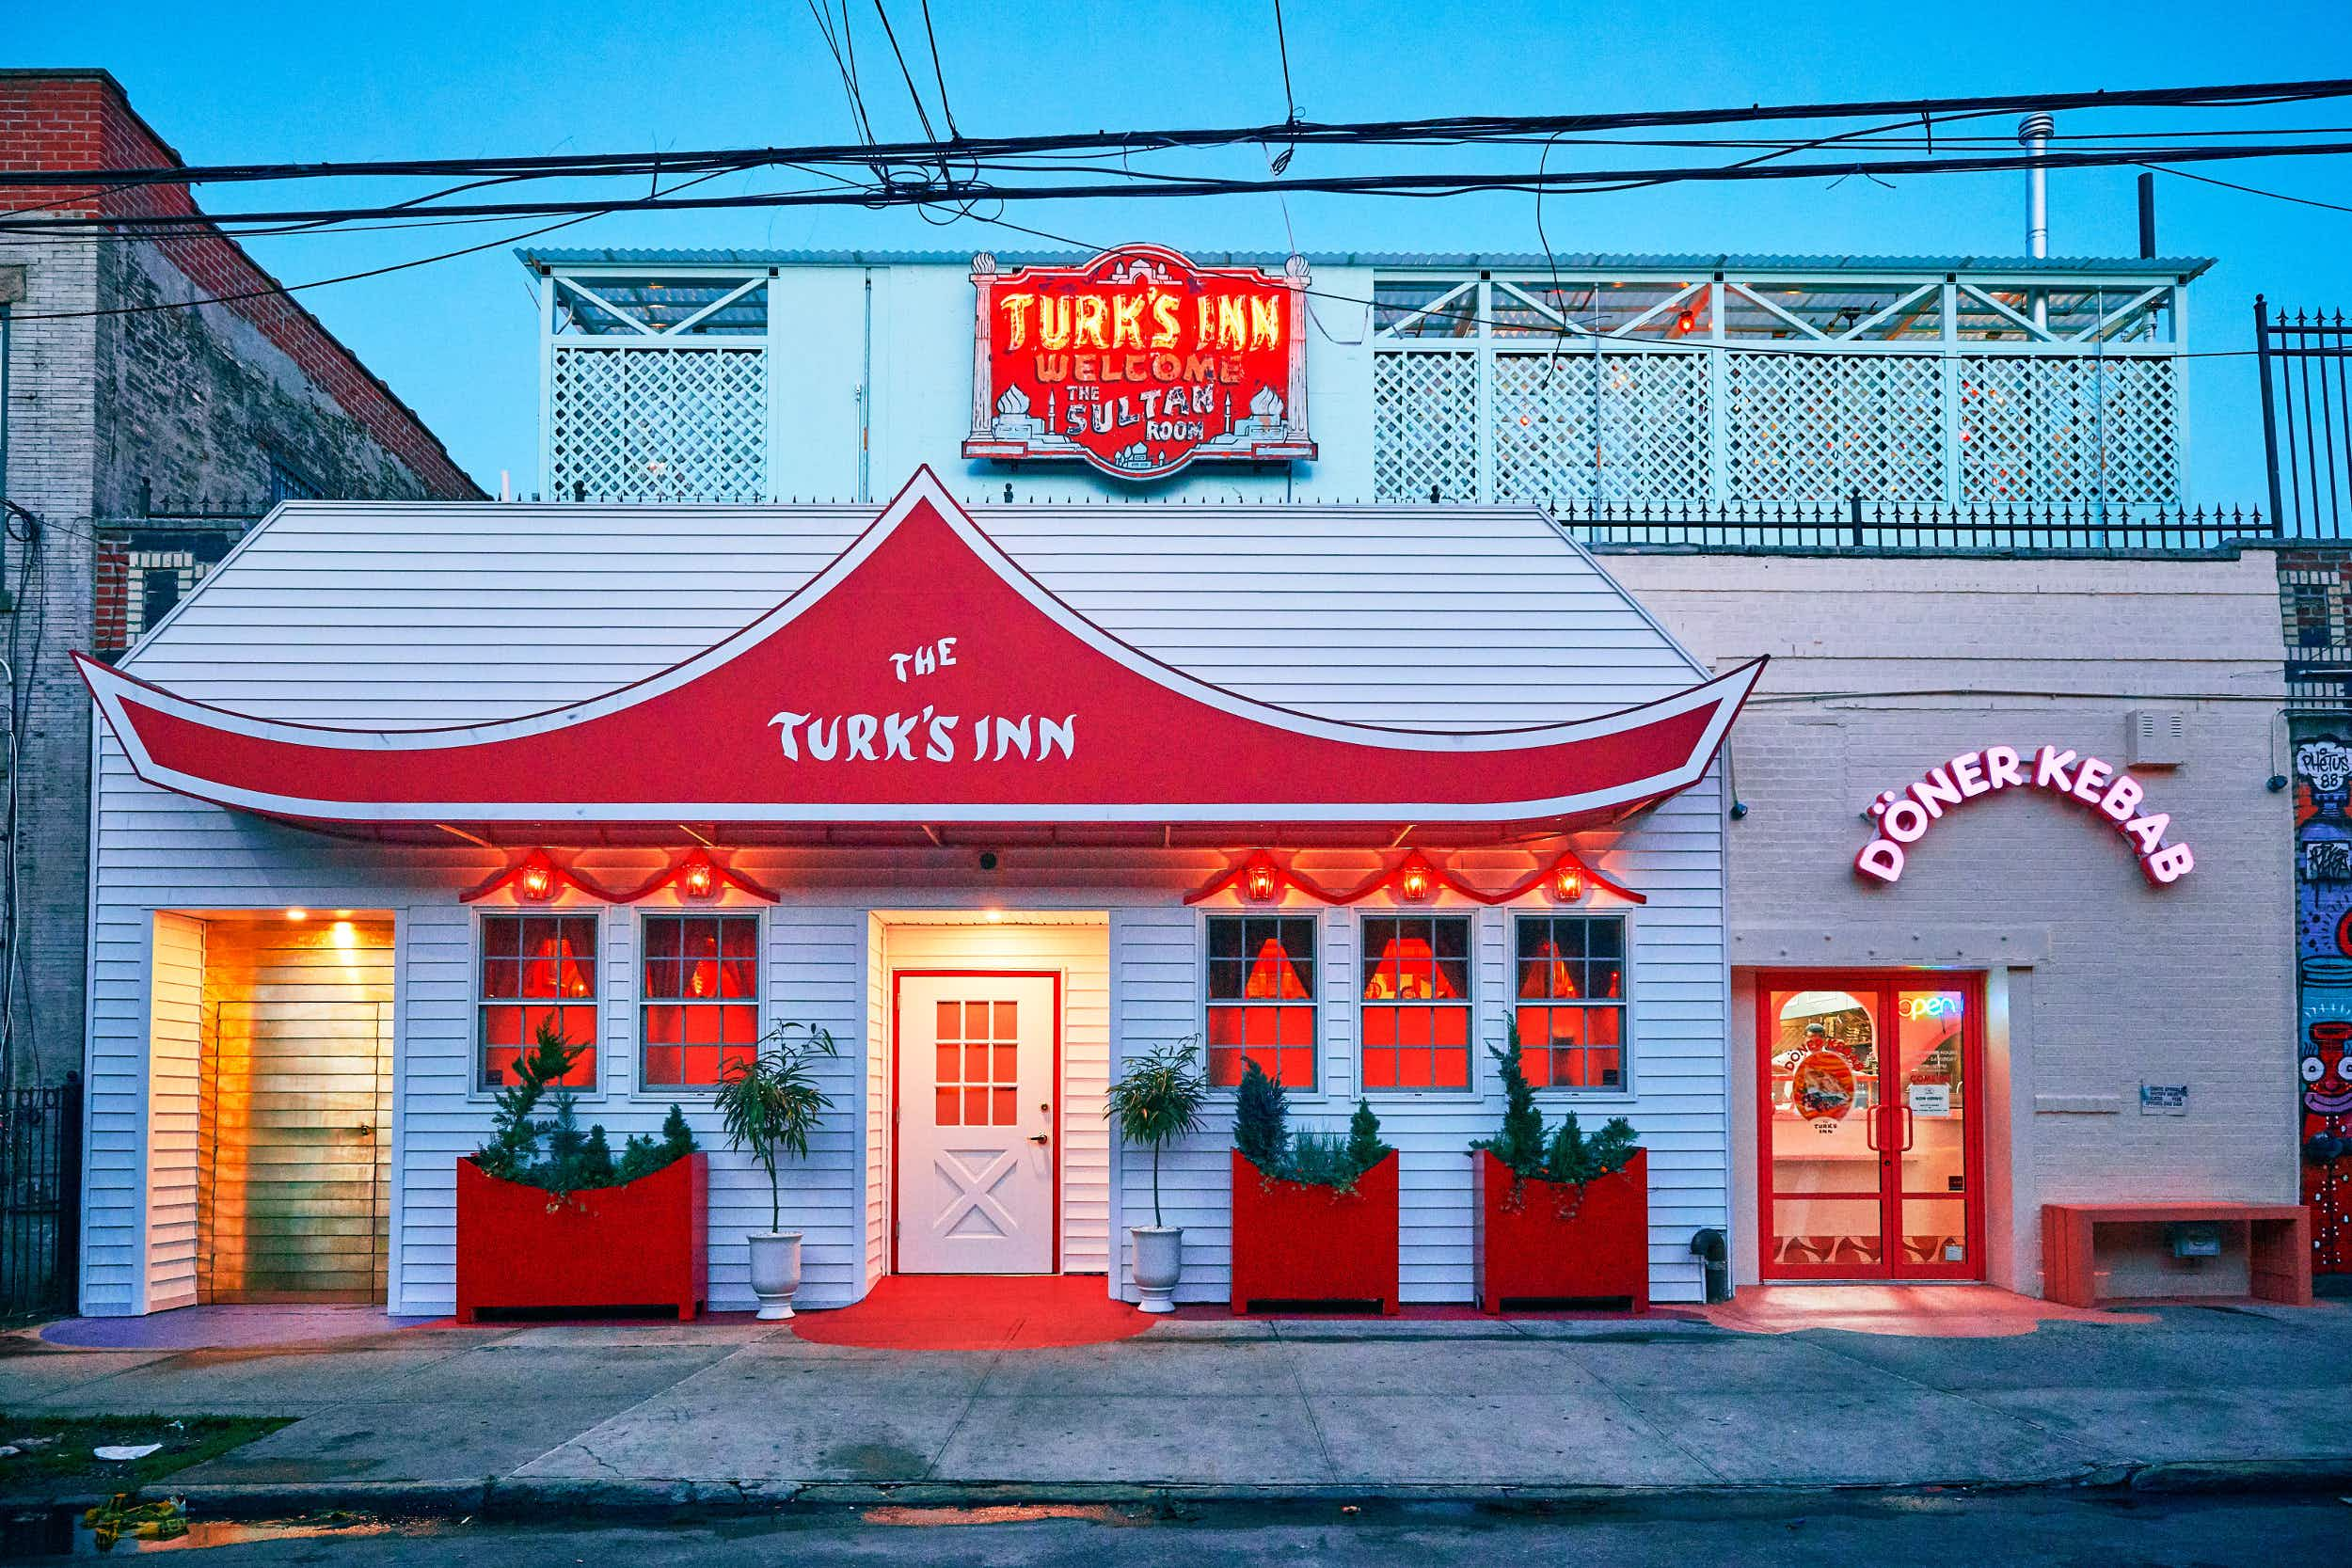 Inside Brooklyn's latest hipster haven, the Turk's Inn